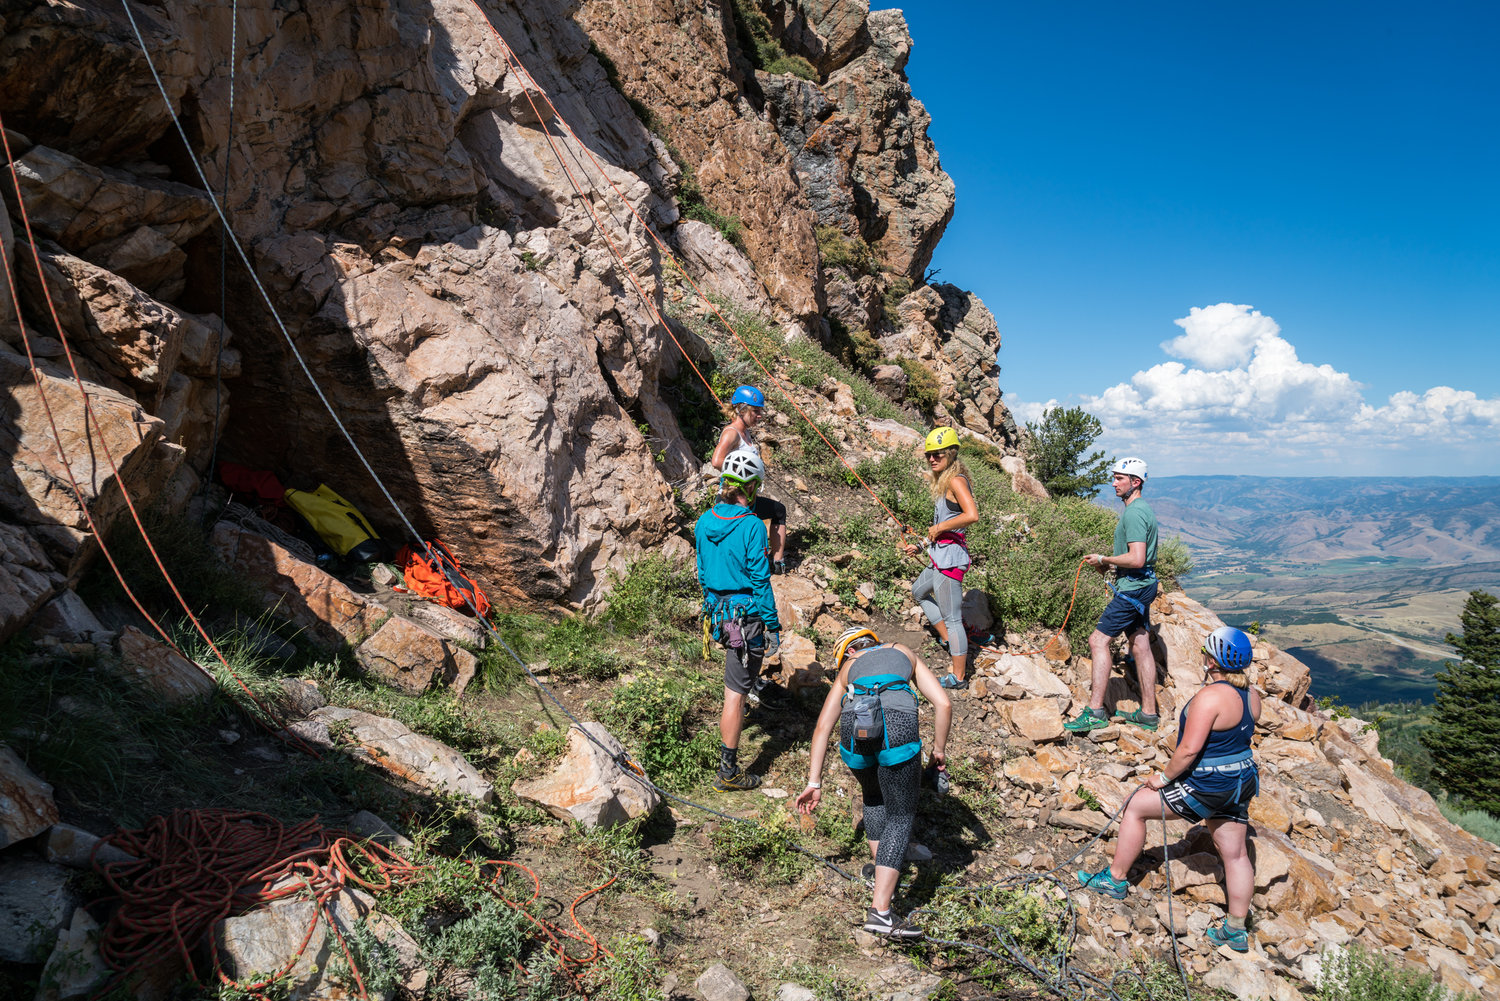 - A full slate of outdoor activities, from SUP to mountain biking to rock climbing. Gear and instruction provided.